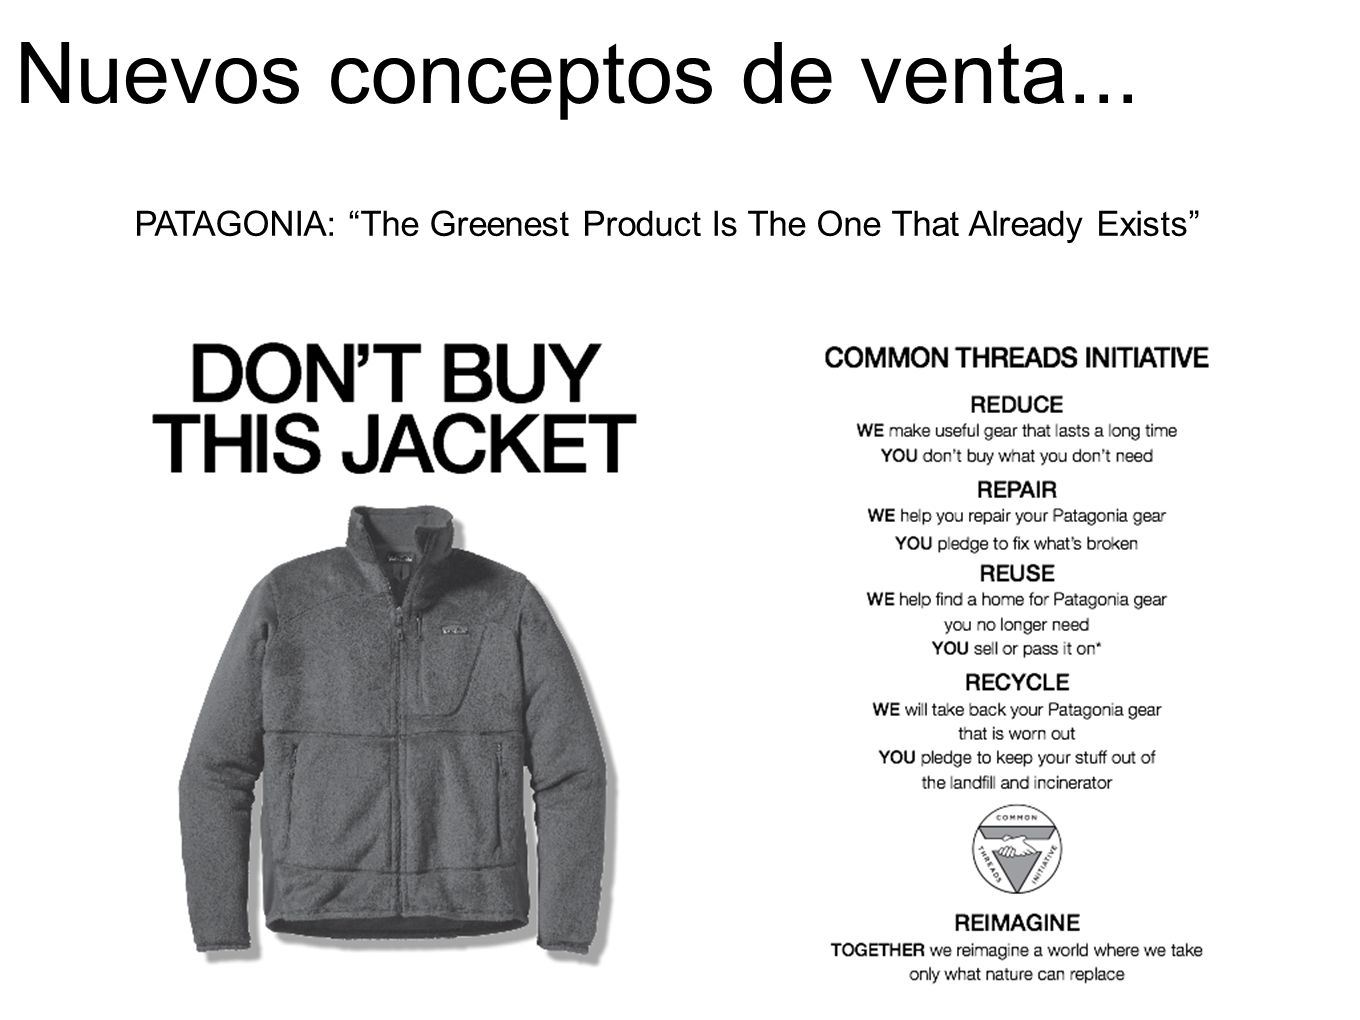 Nuevos conceptos de venta... PATAGONIA: The Greenest Product Is The One That Already Exists